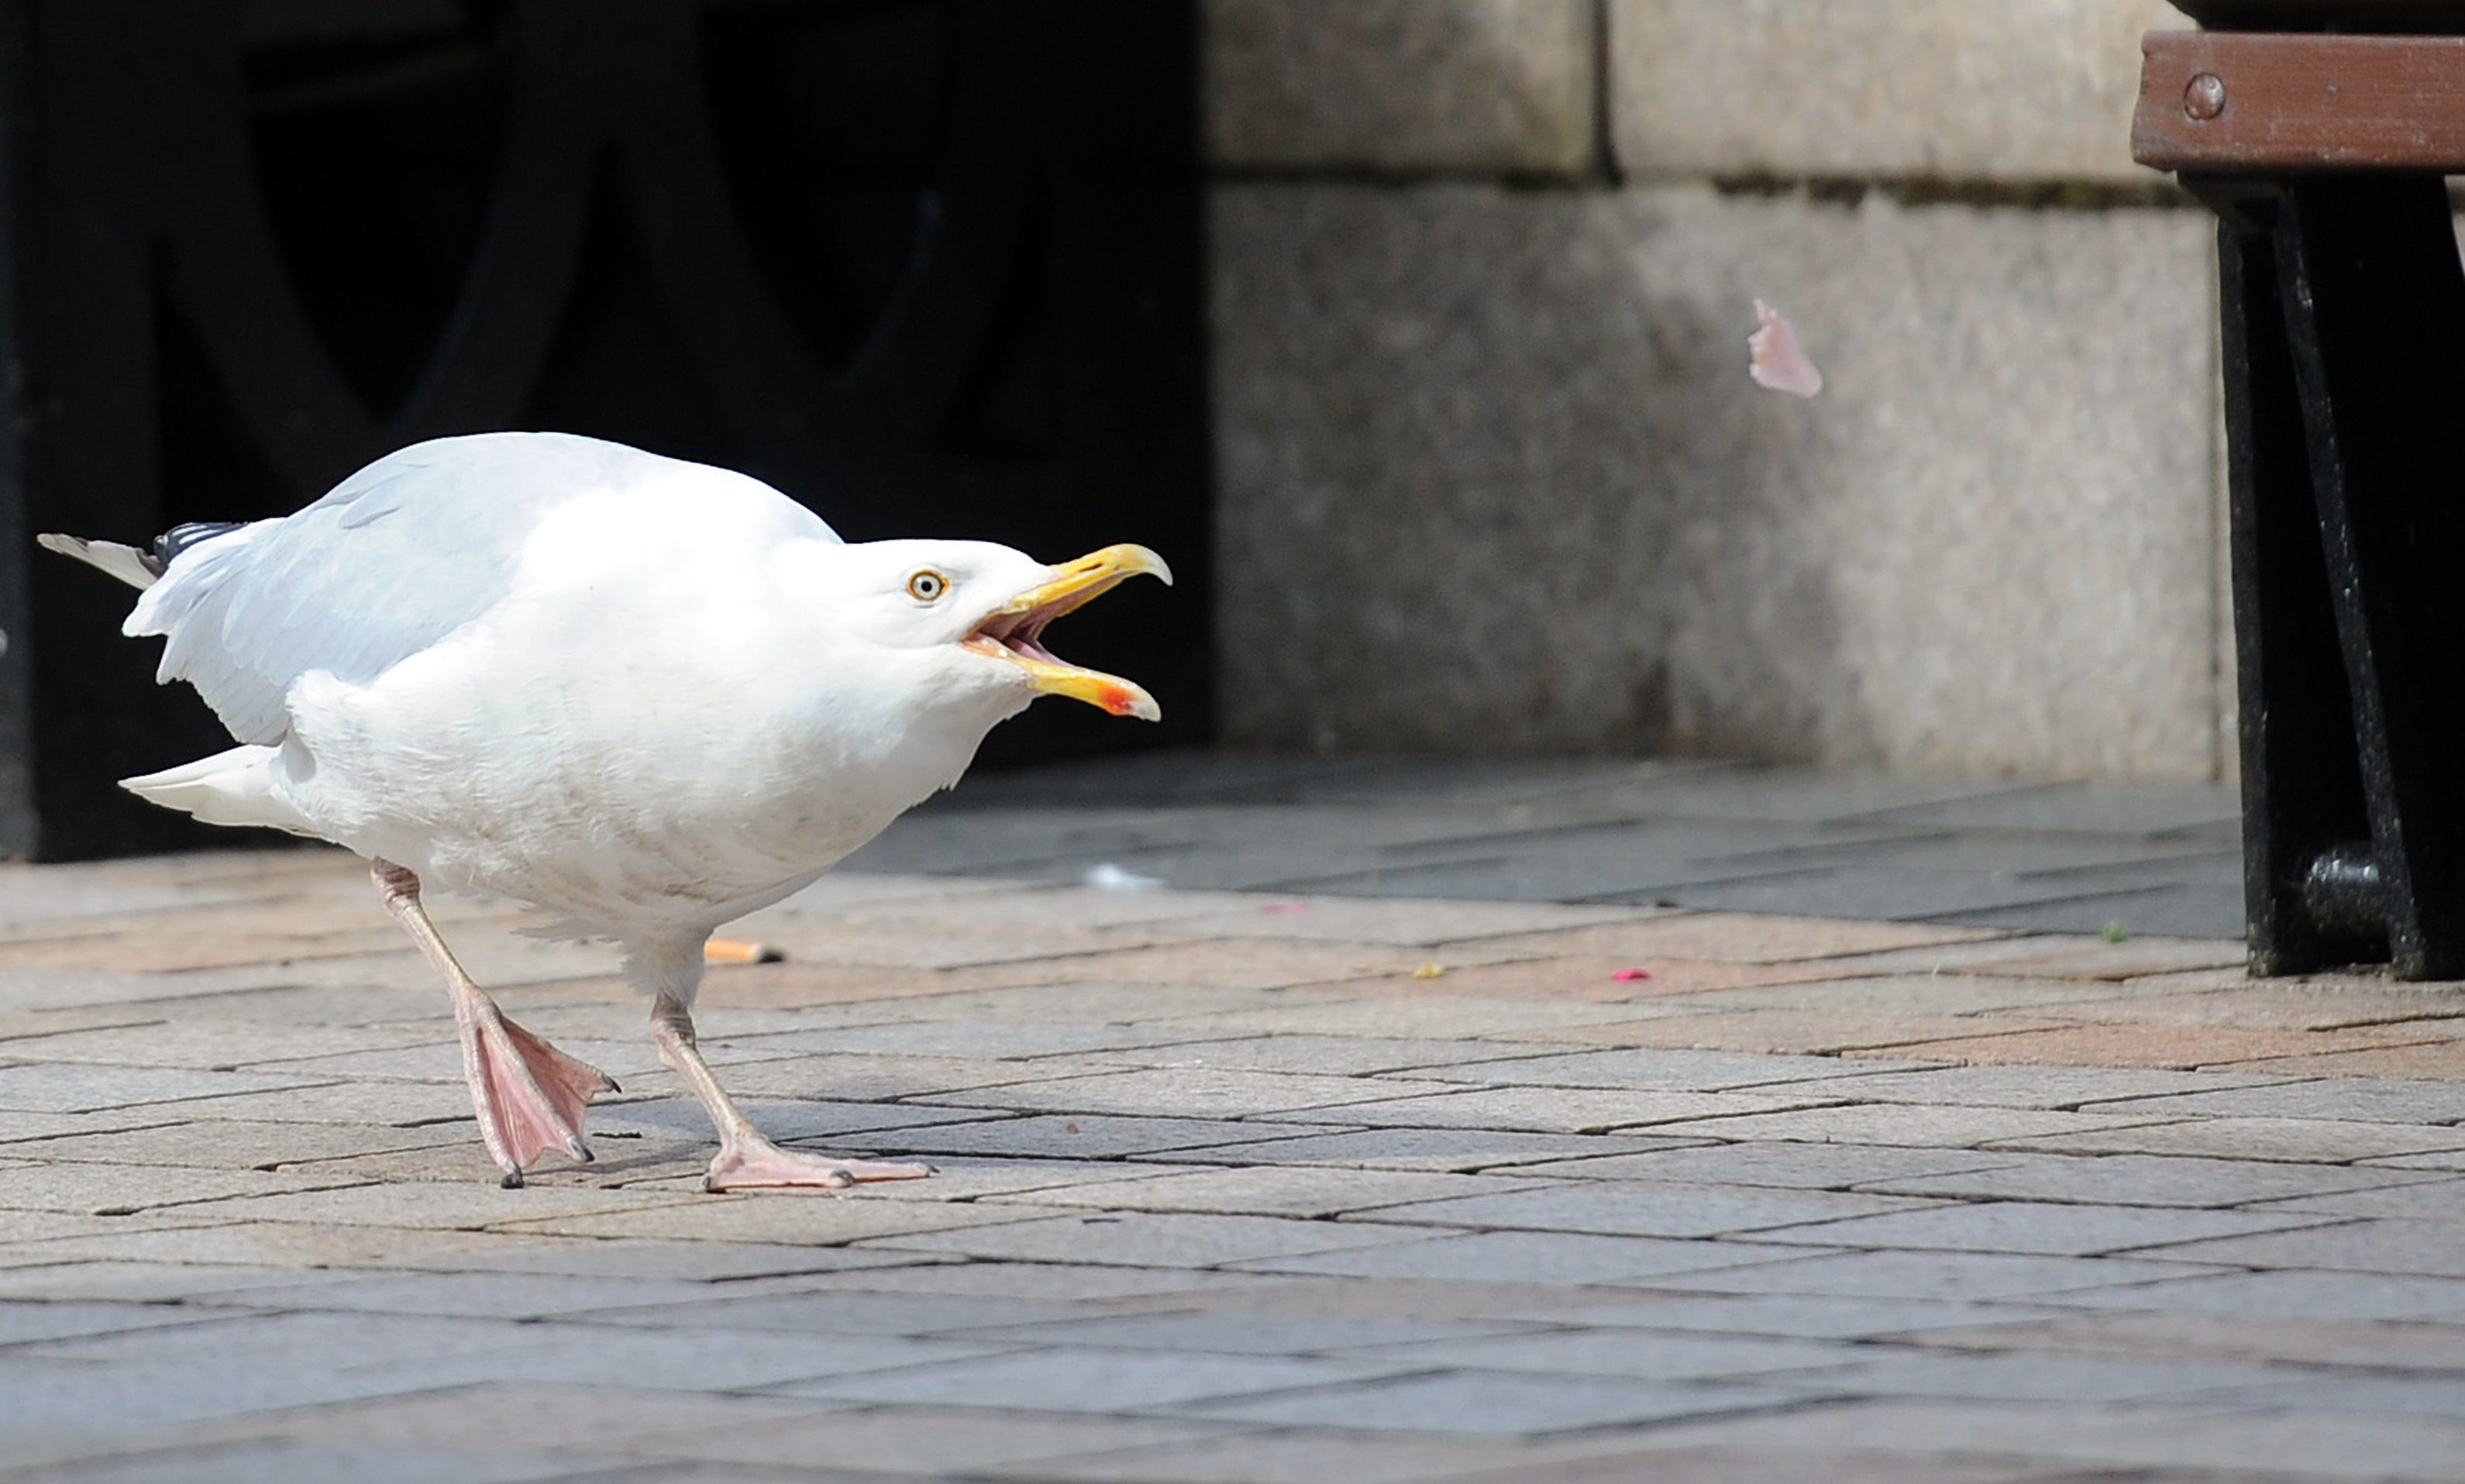 A seagull asserts its authority in Dundee city centre.